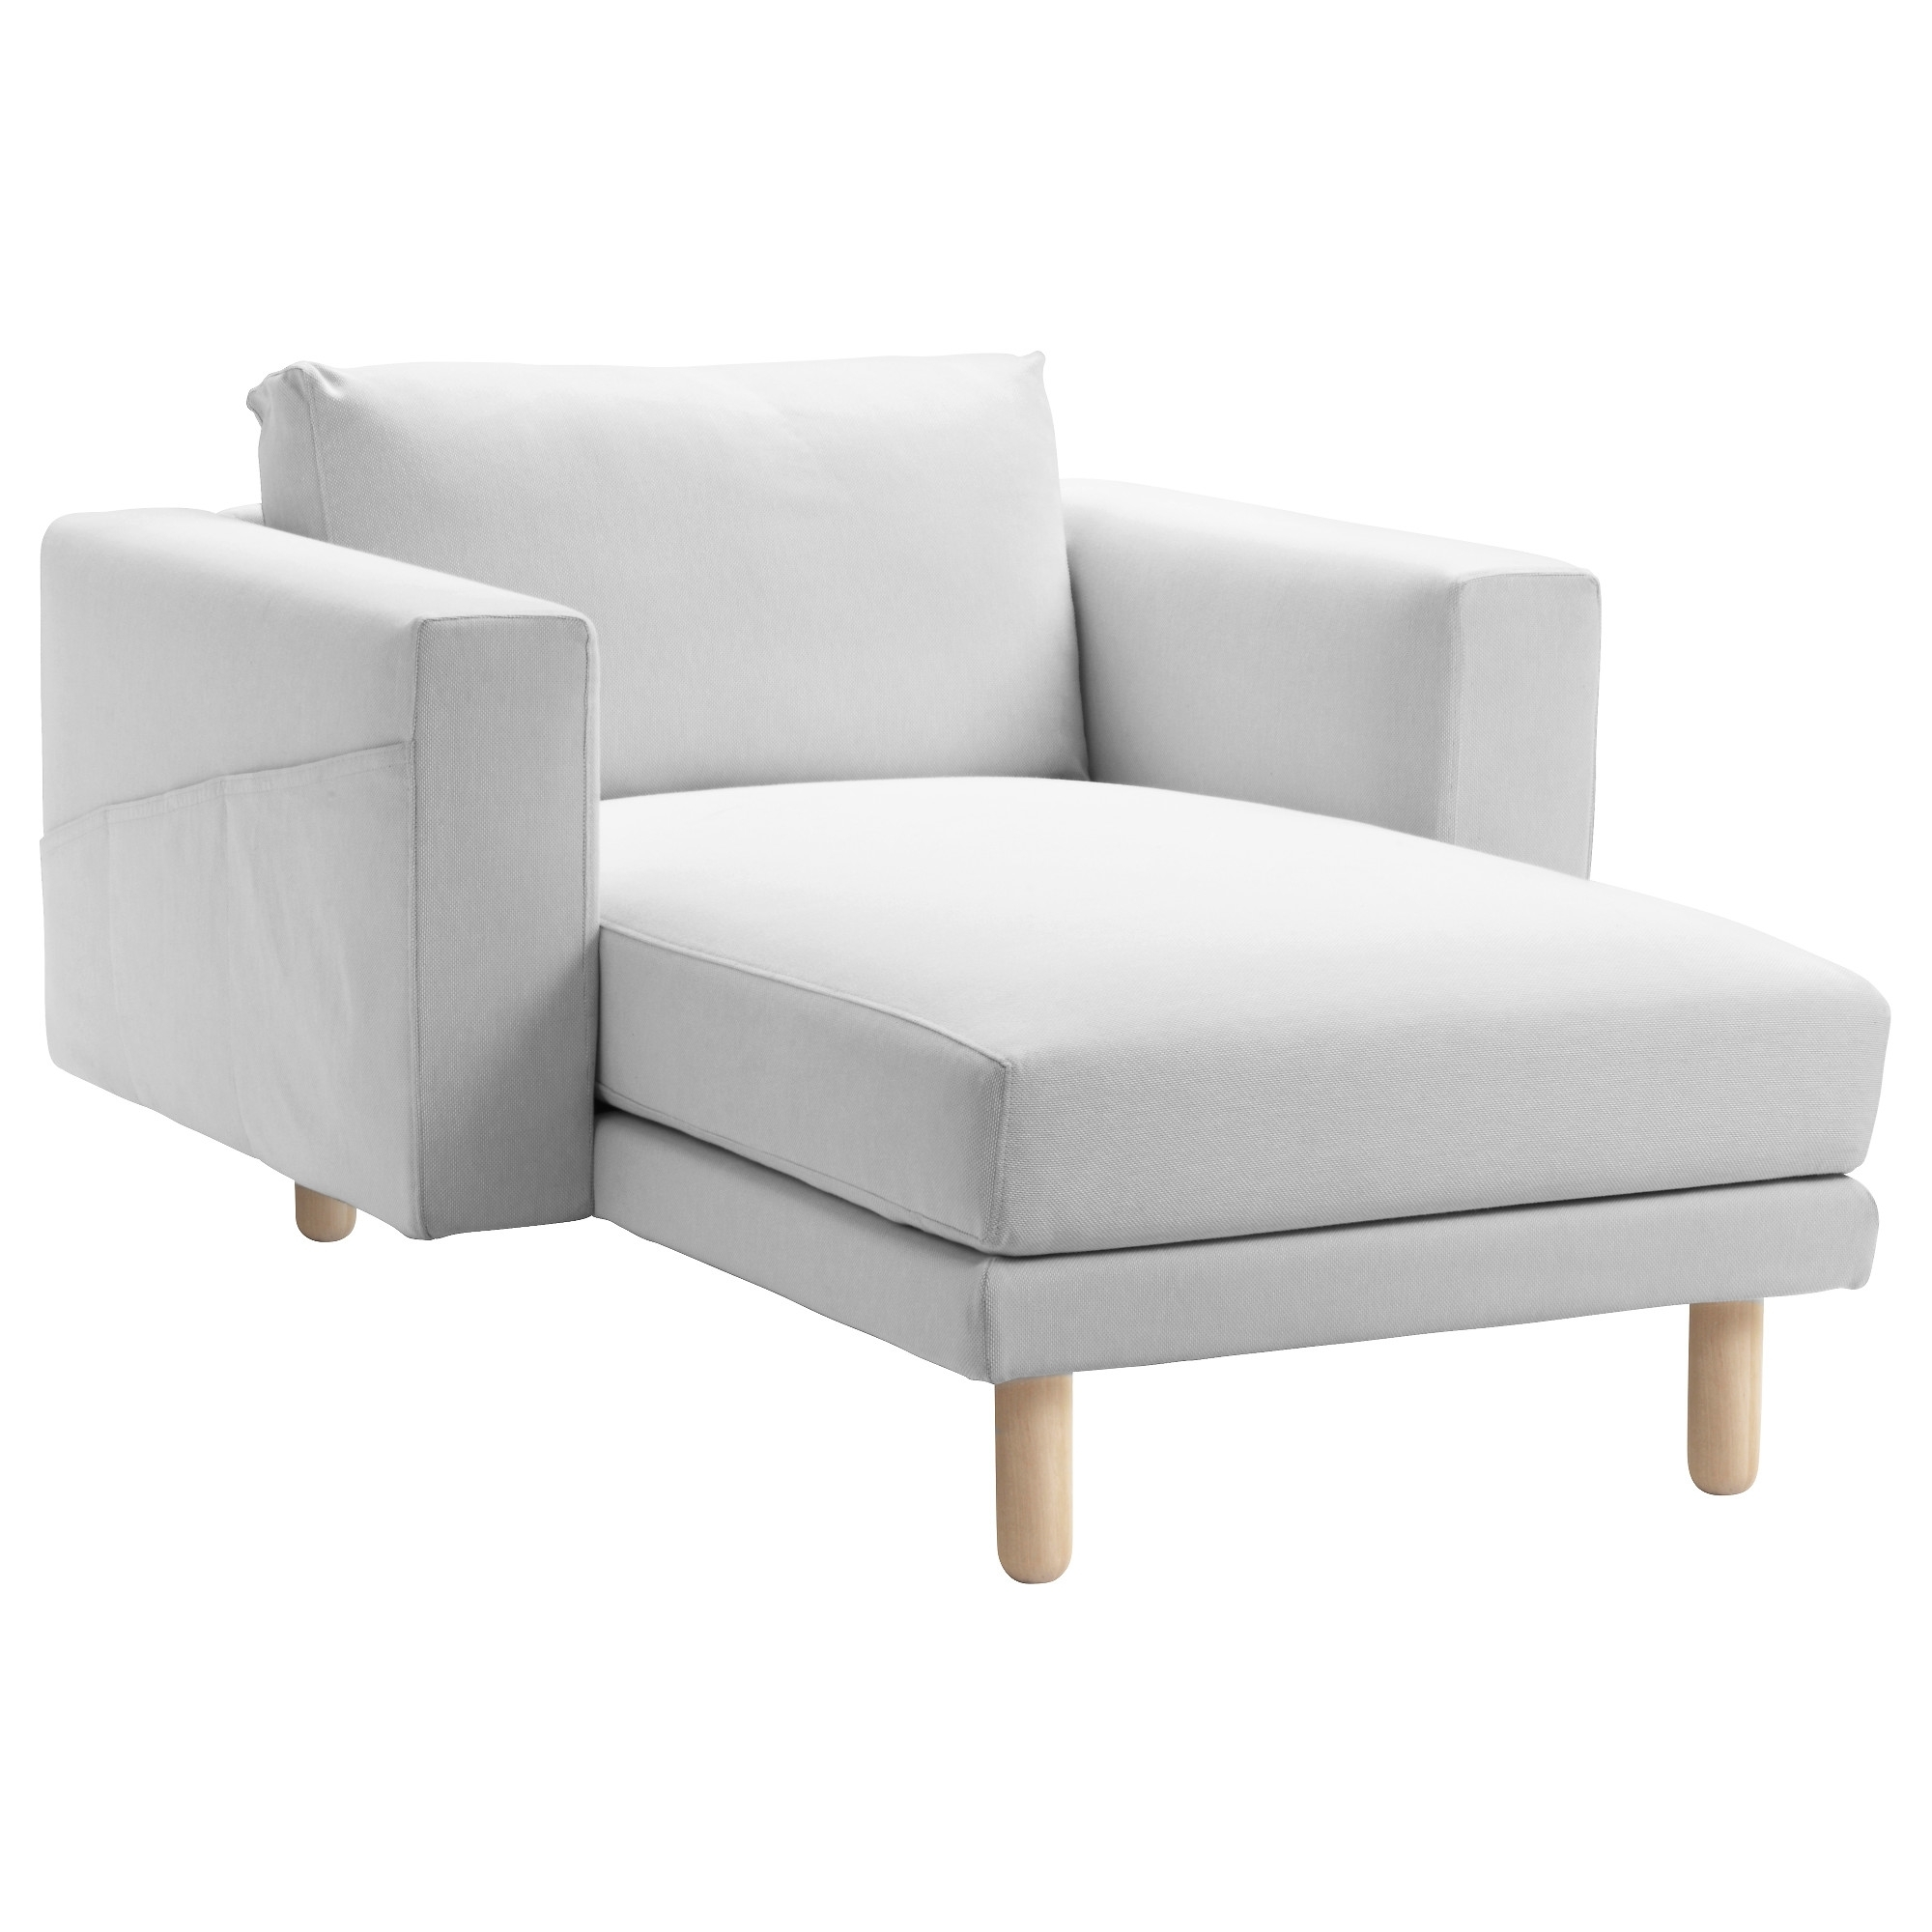 Best And Newest Norsborg Cover For Chaise Longue Finnsta White – Ikea For Ikea Chaise Longues (View 1 of 15)